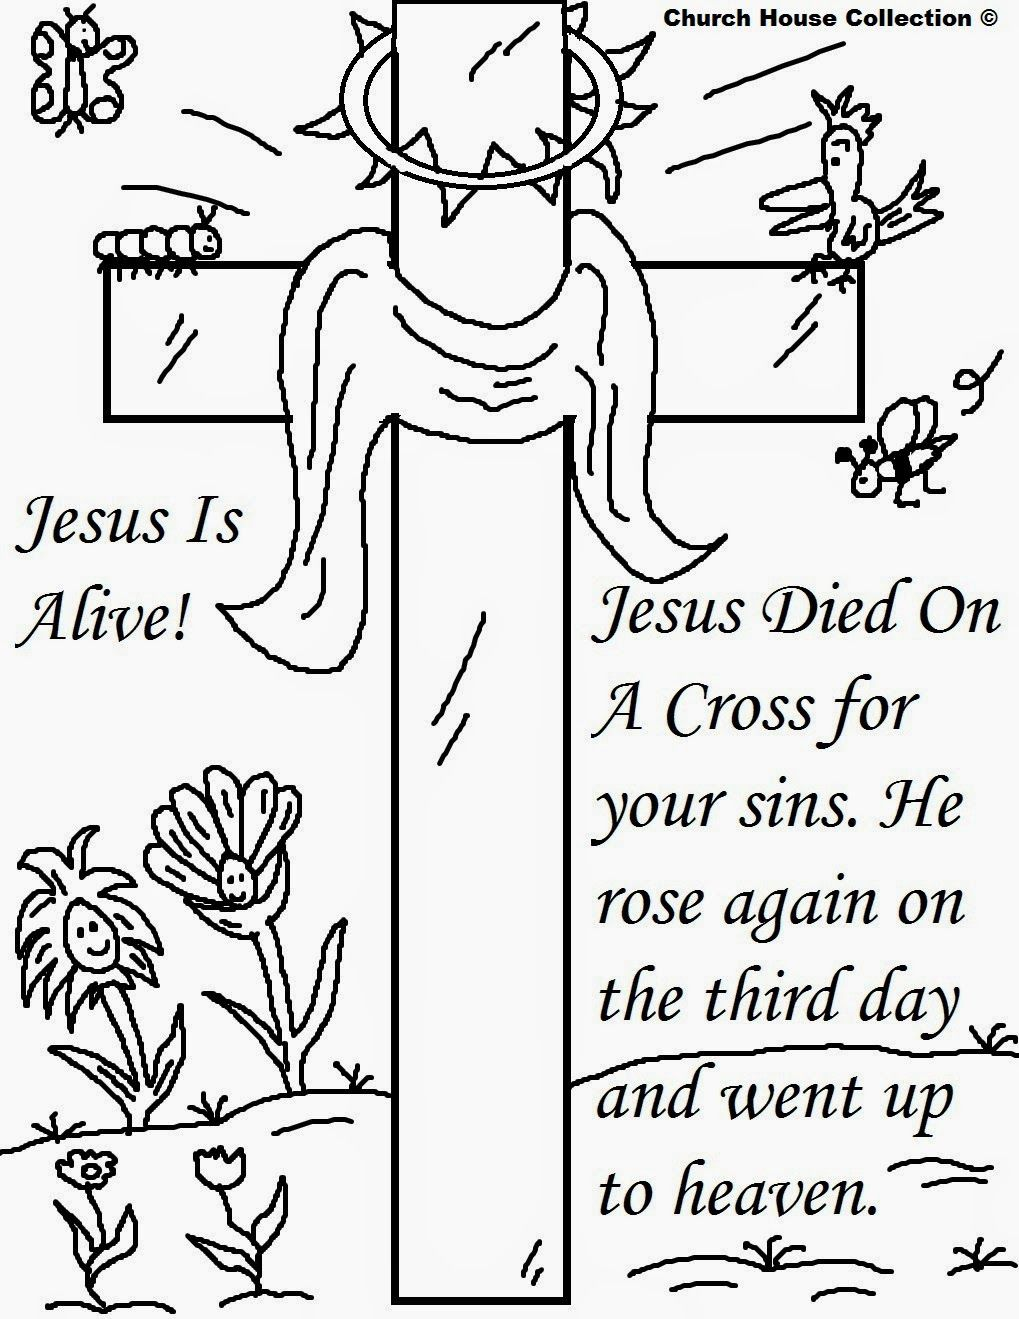 Church House Collection Blog: Easter Jesus Resurrection Coloring ...